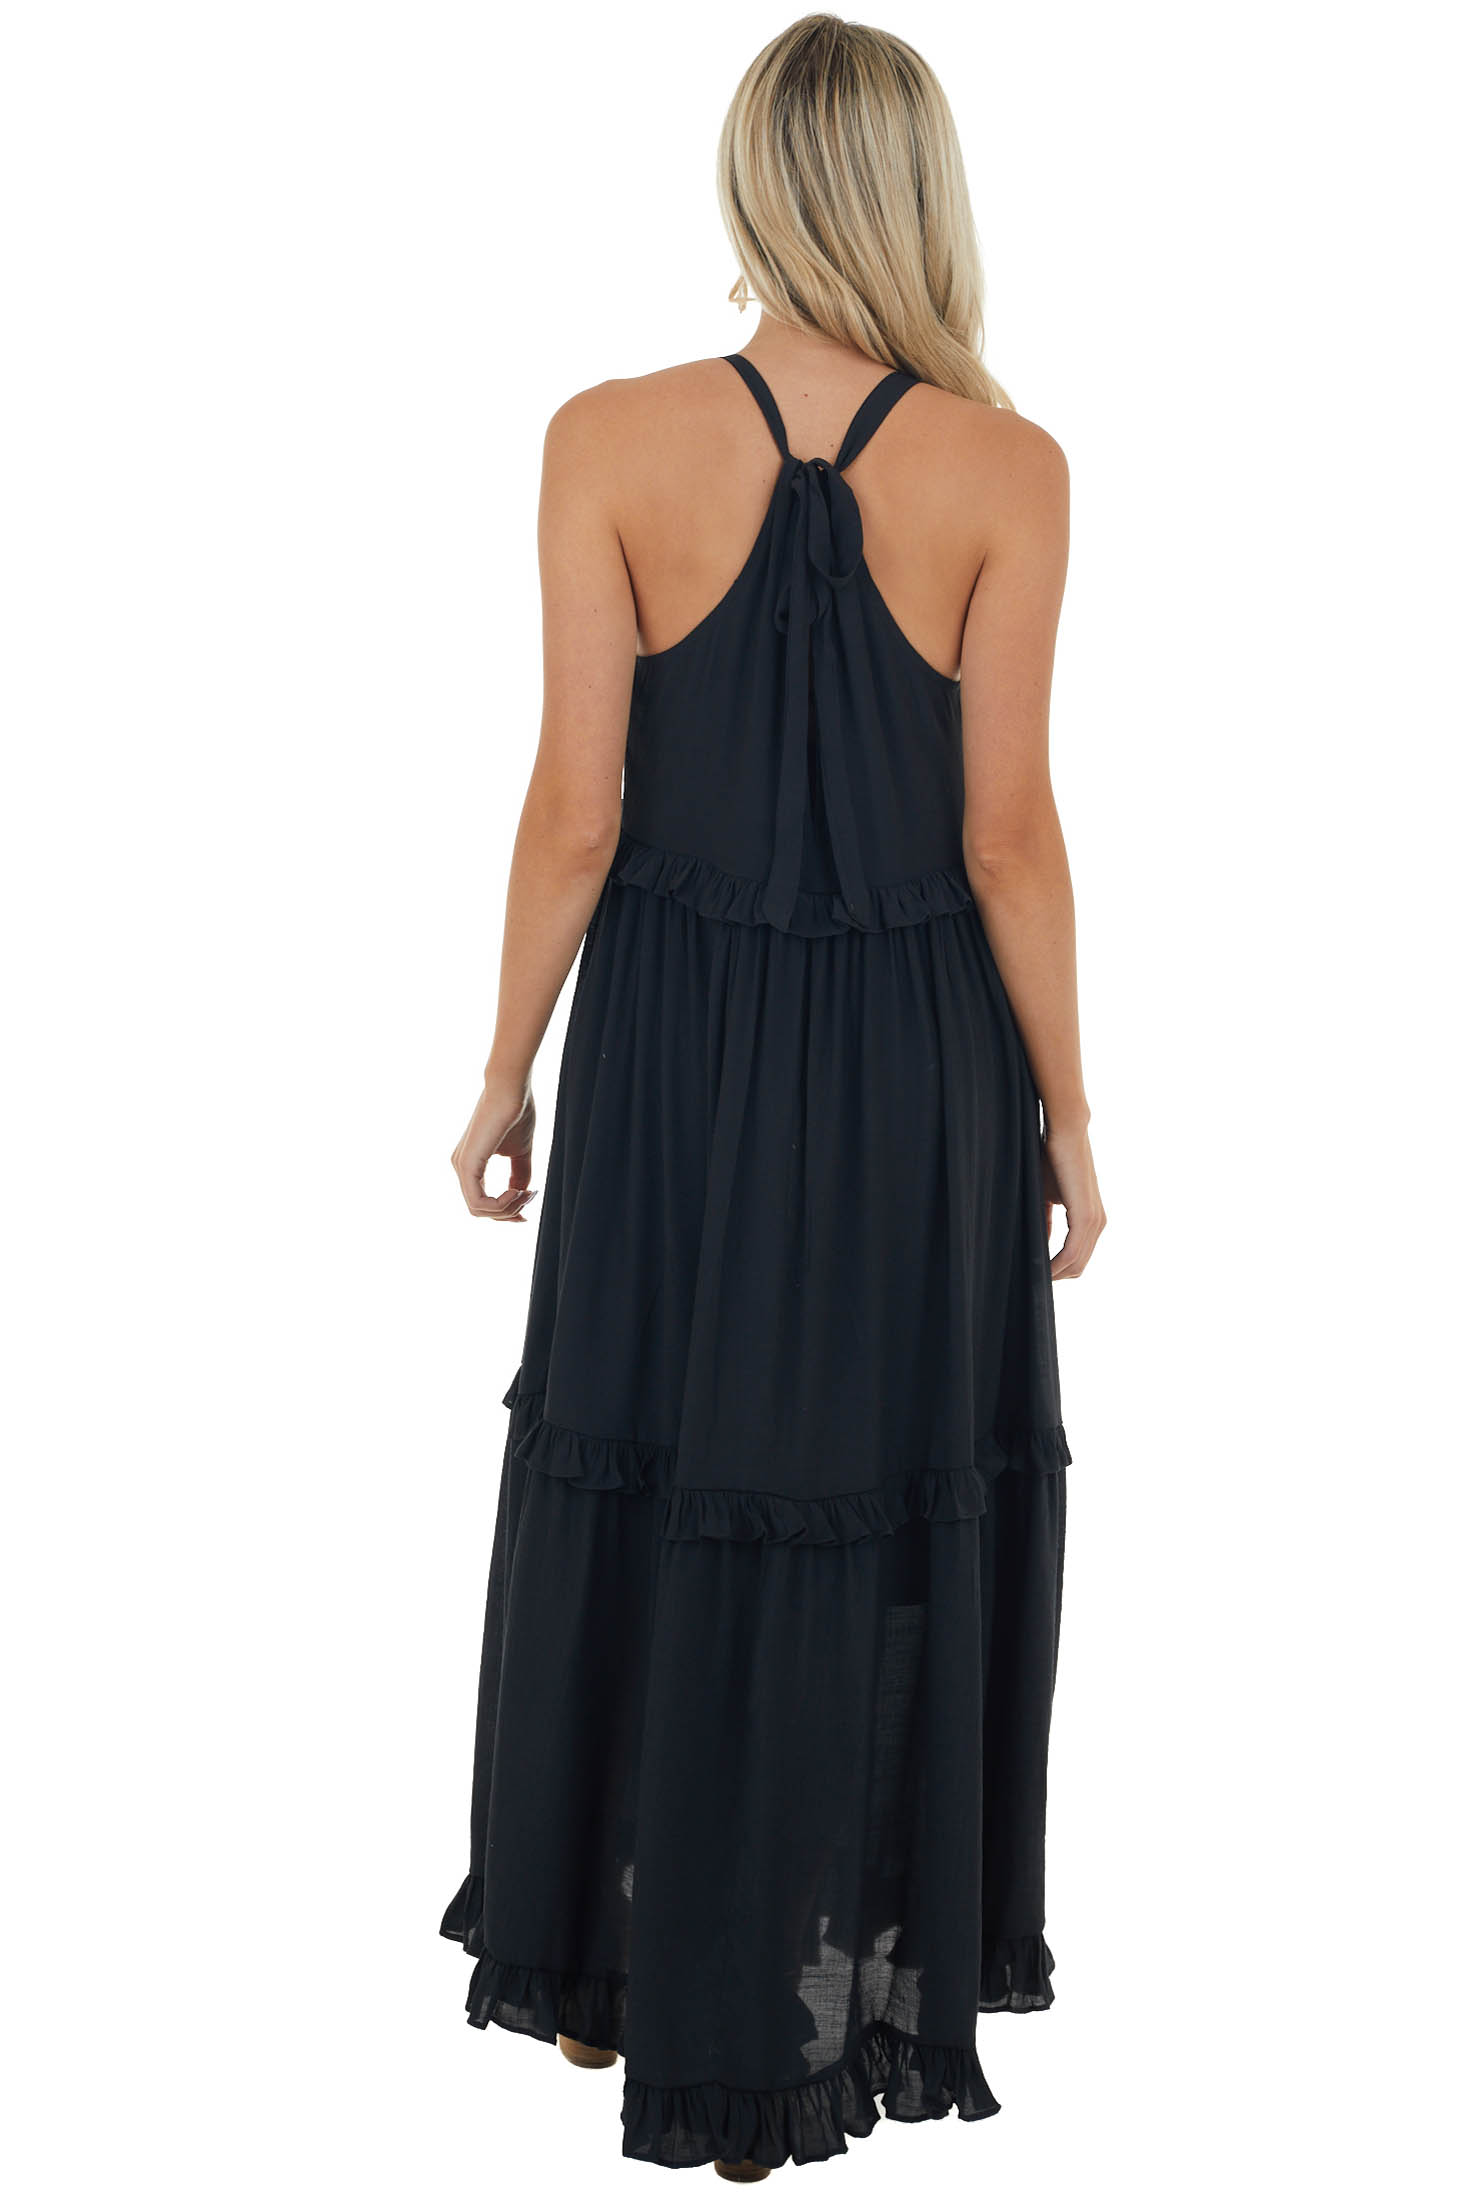 Black Tiered Halter Neck Woven Maxi Dress with Keyhole